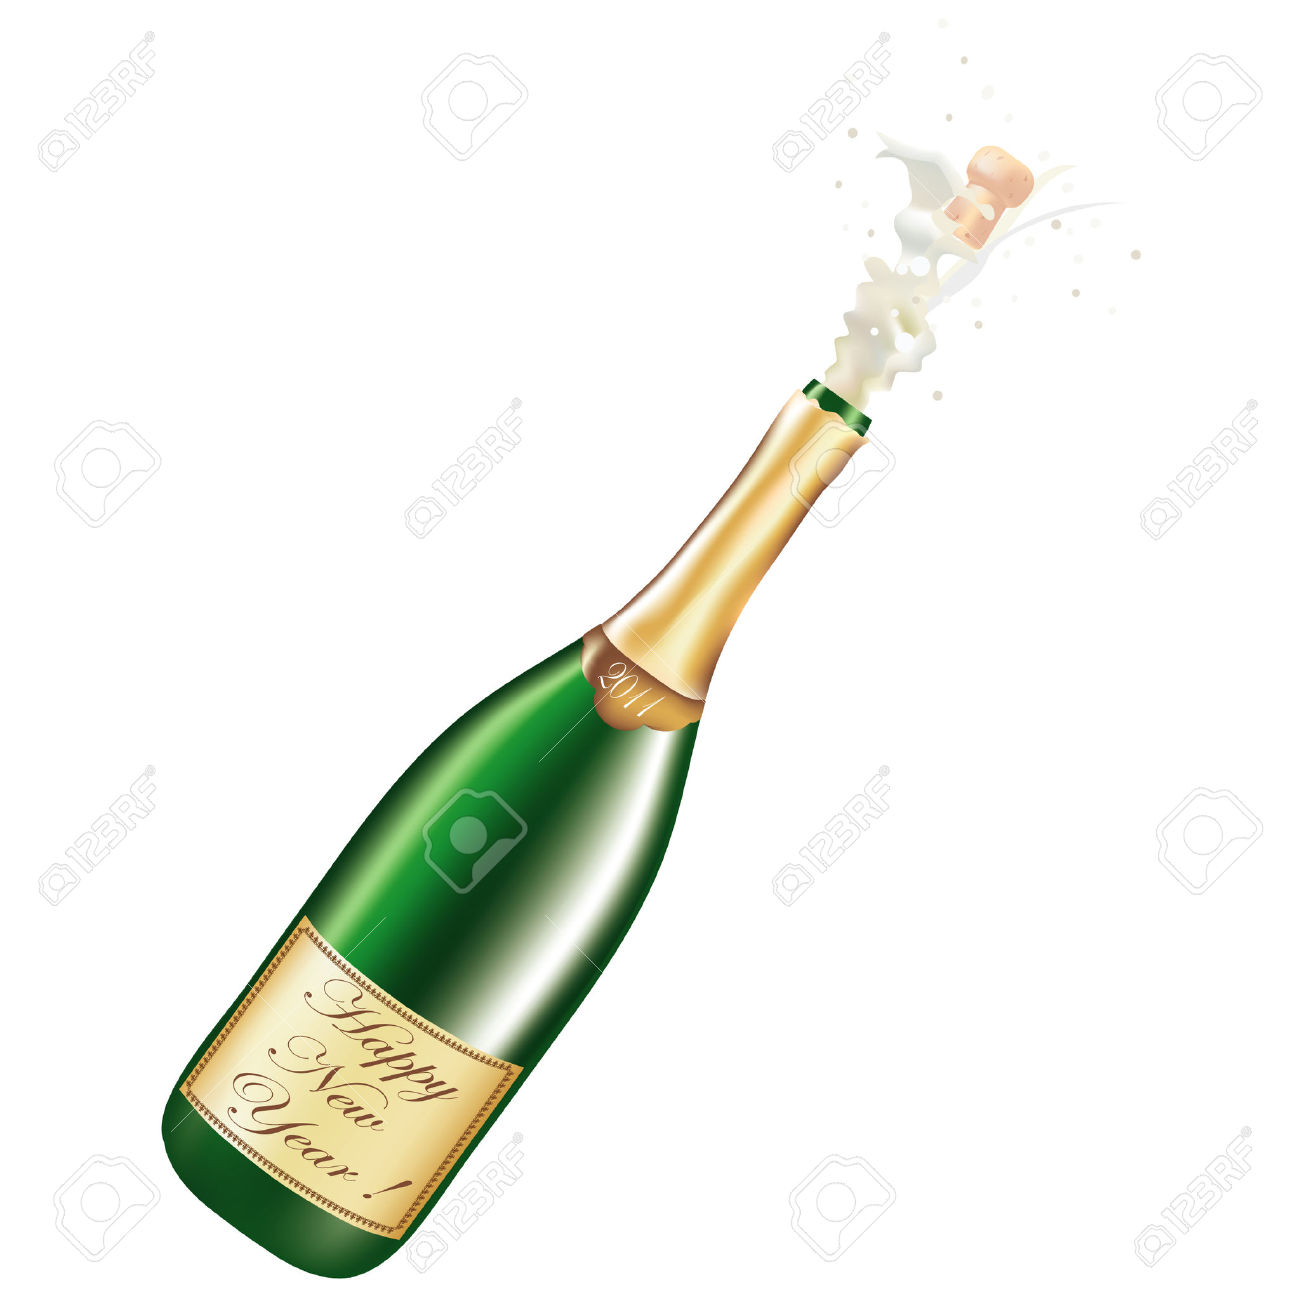 Champagne bottle popping clipart png free download Champagne Bottle Cliparts | Free download best Champagne Bottle ... png free download